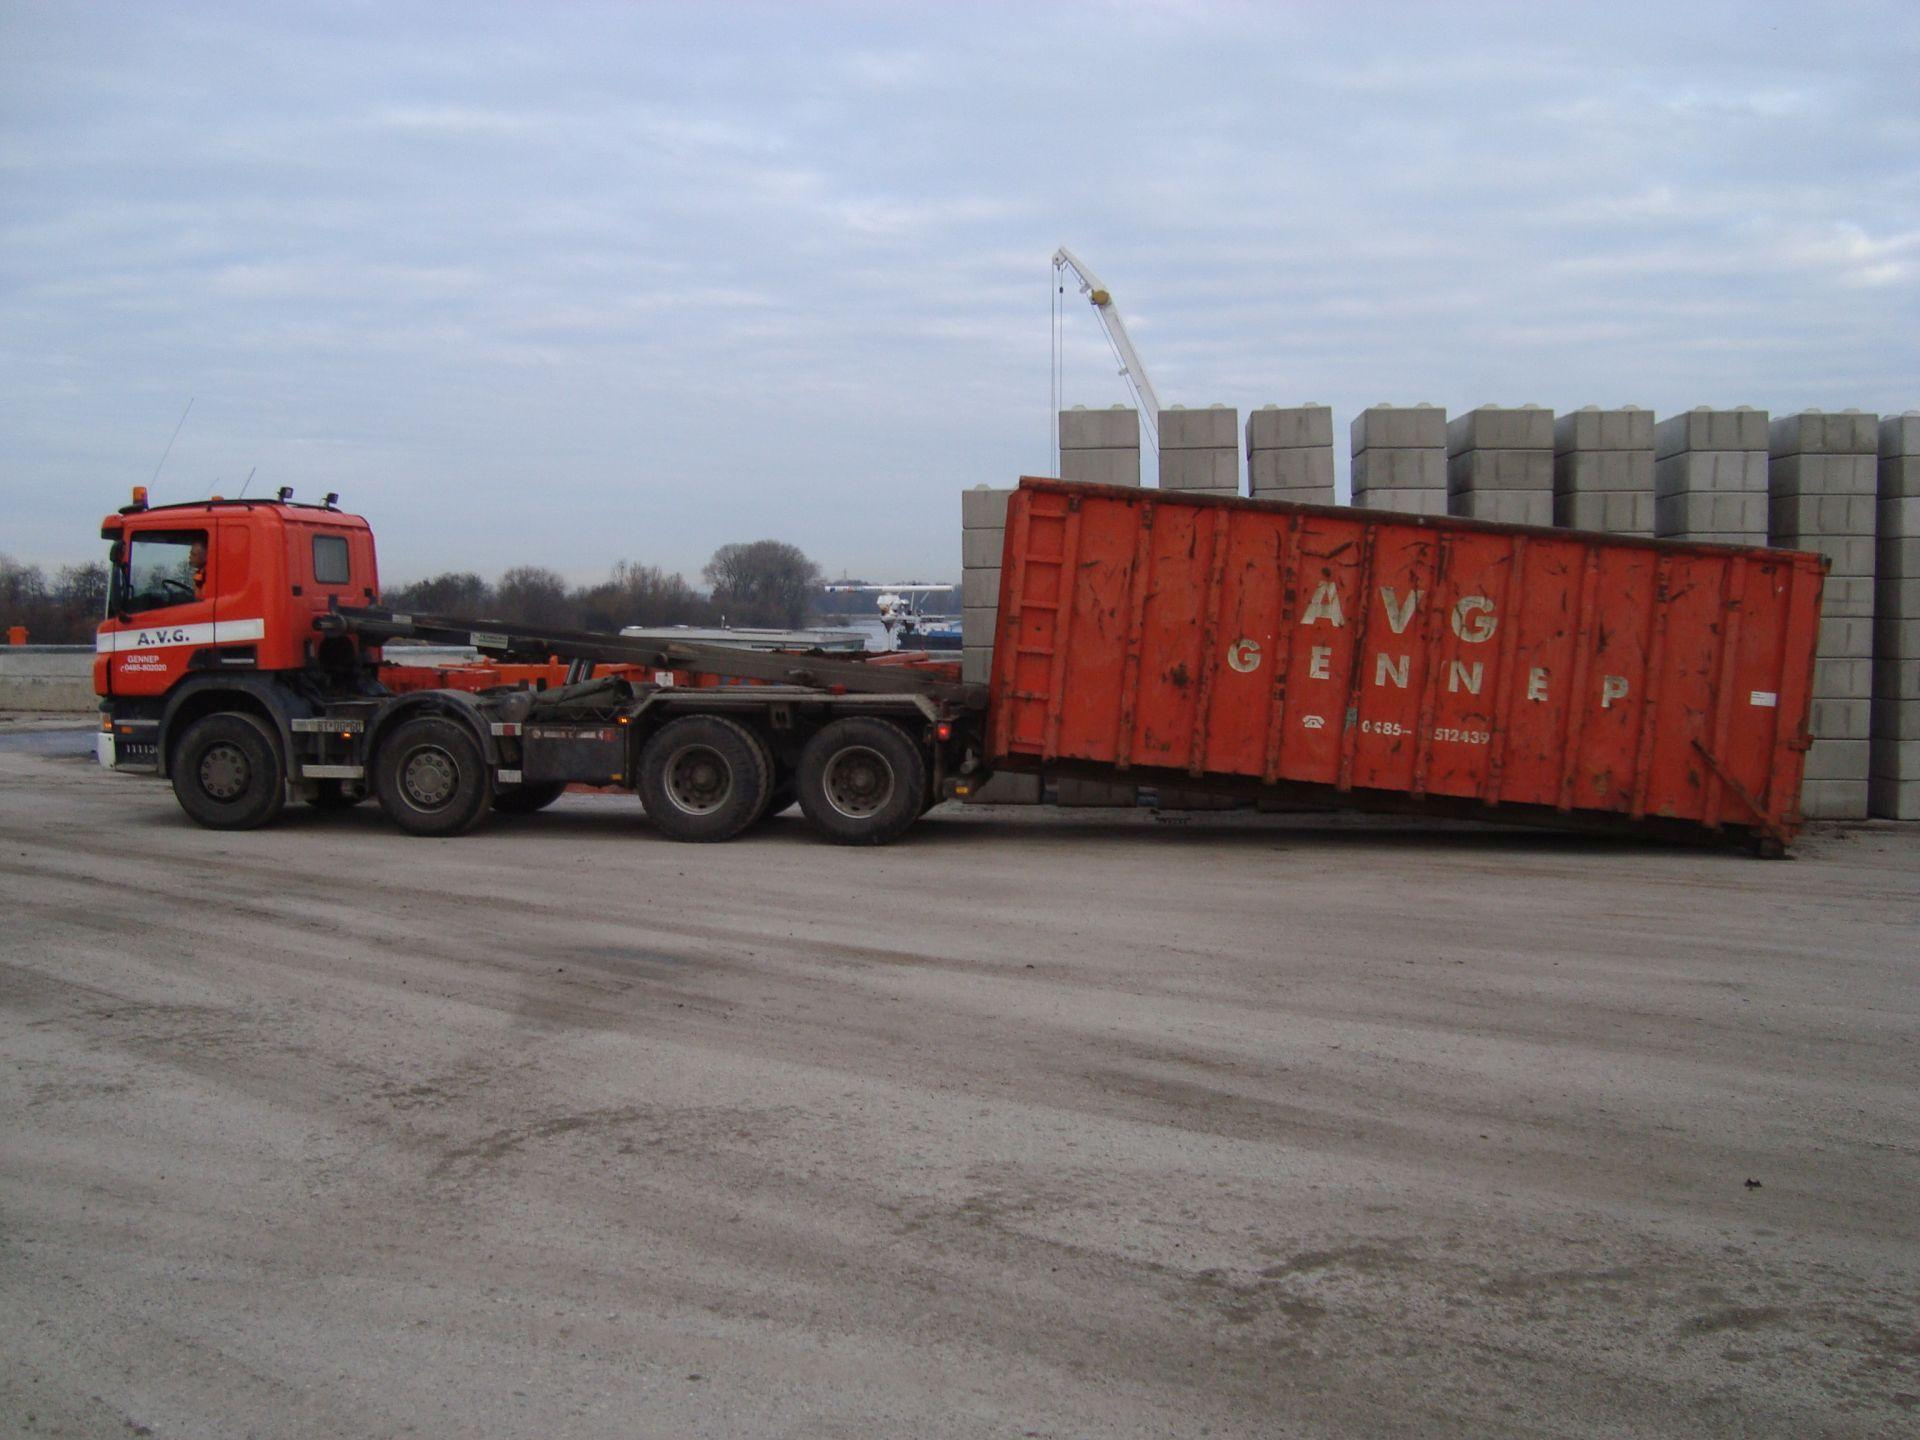 grote-container-6-avg-bouwstoffen